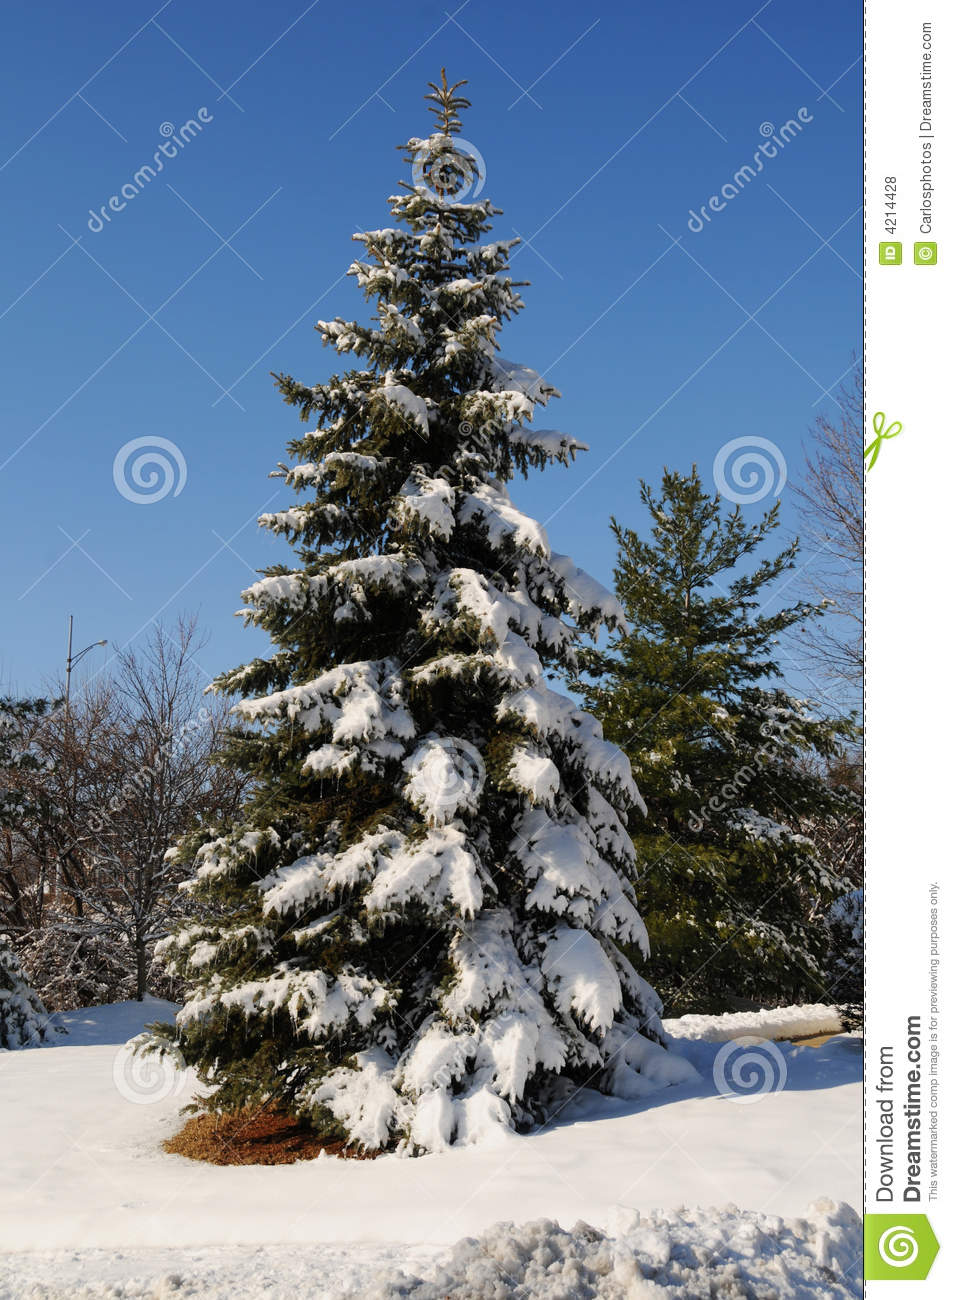 Pine tree with snow royalty free stock photos image 4214428 - Images of pine trees in snow ...